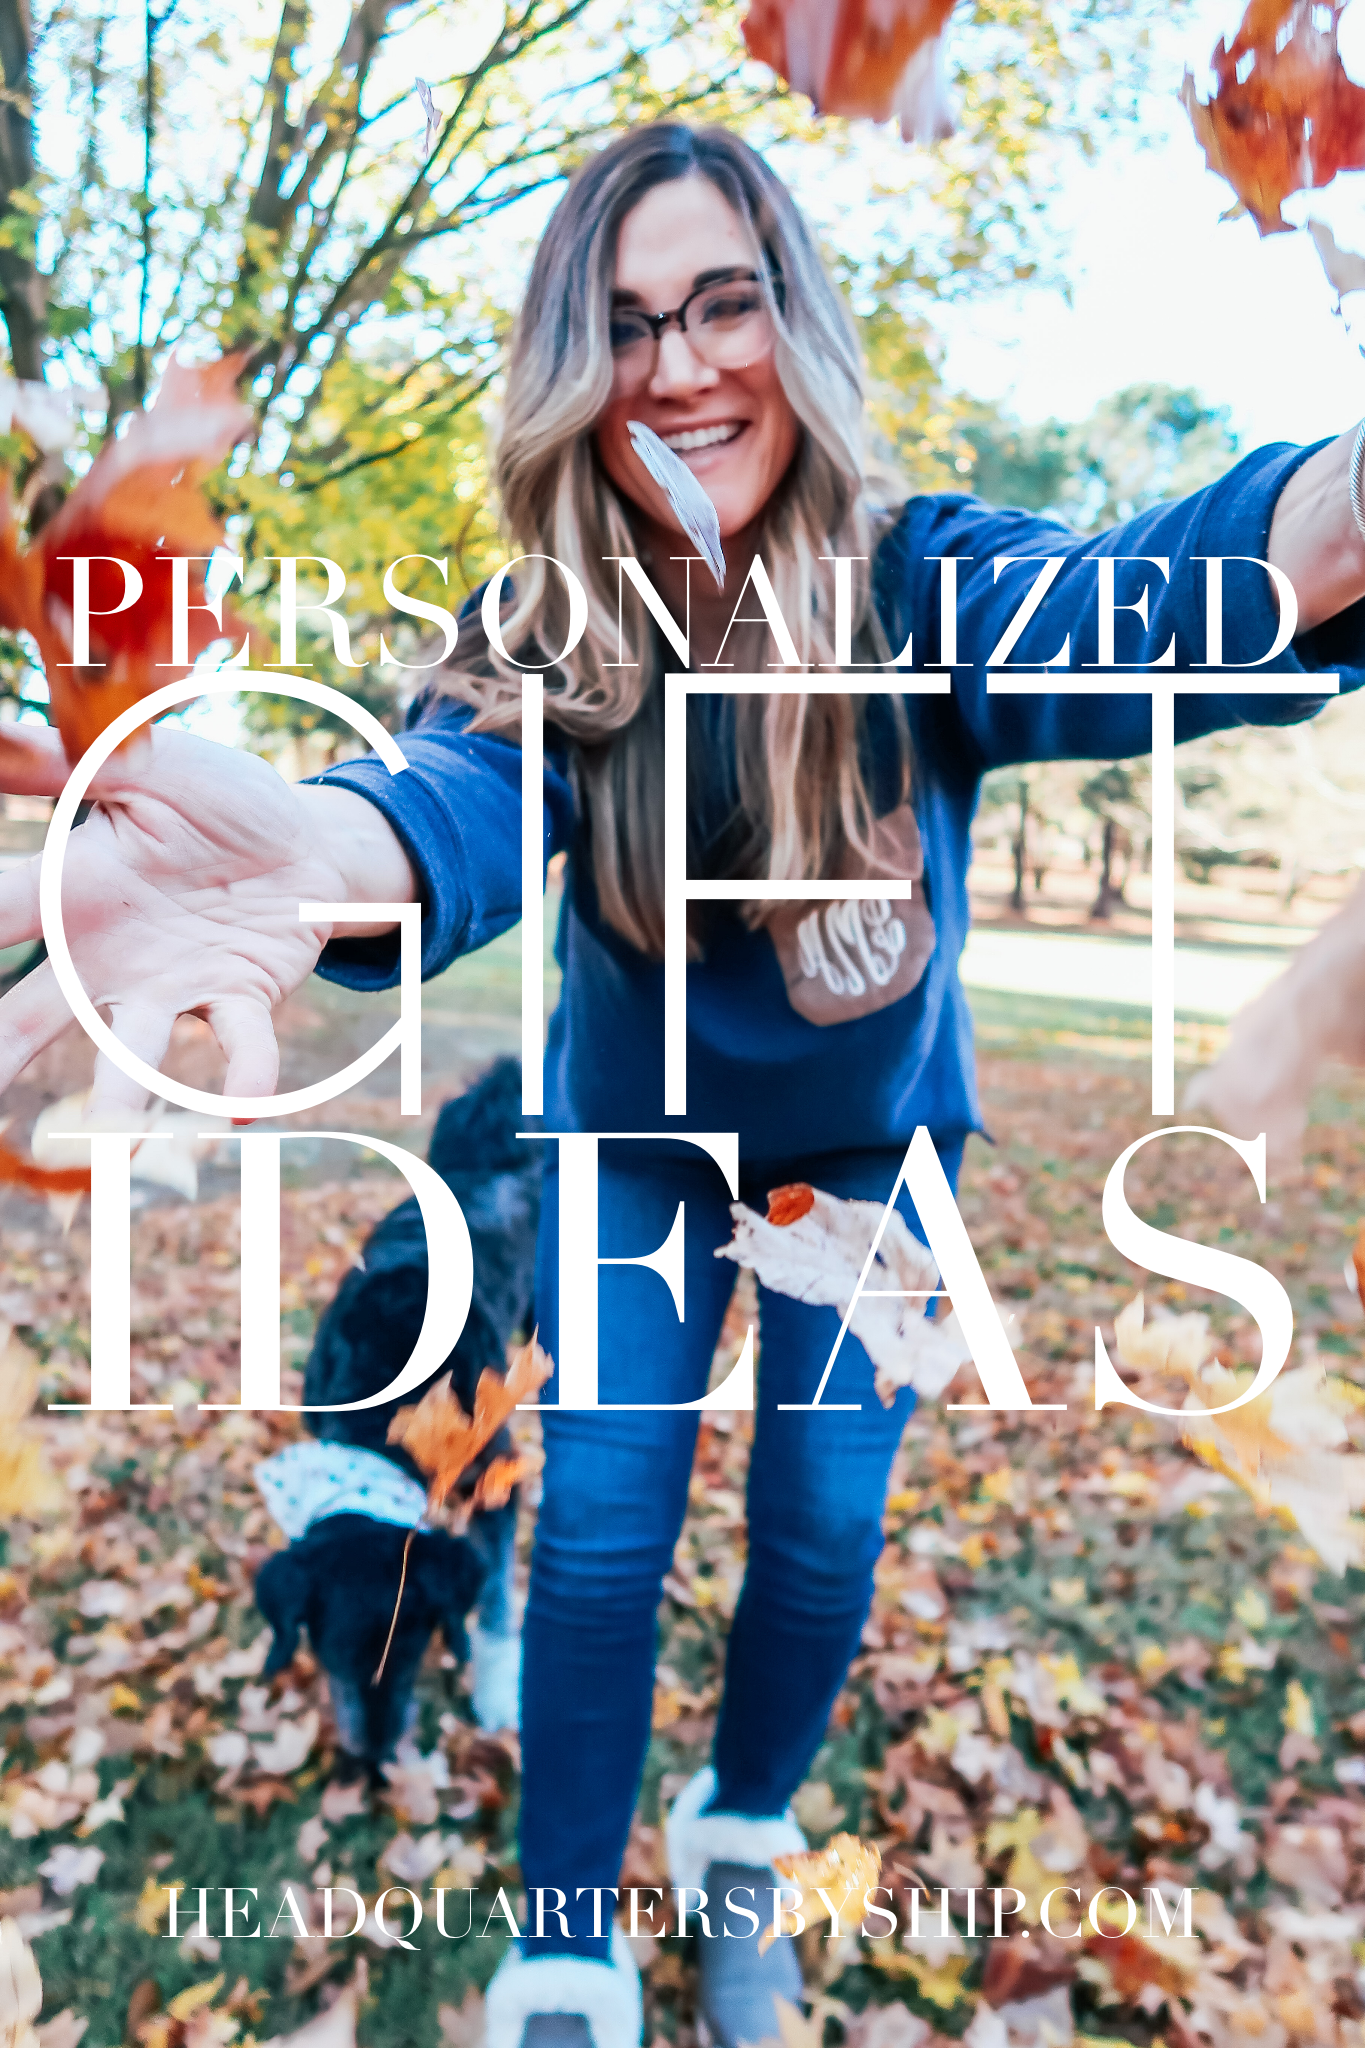 Gift Guide | Personalized Gifts with Marley Lilly